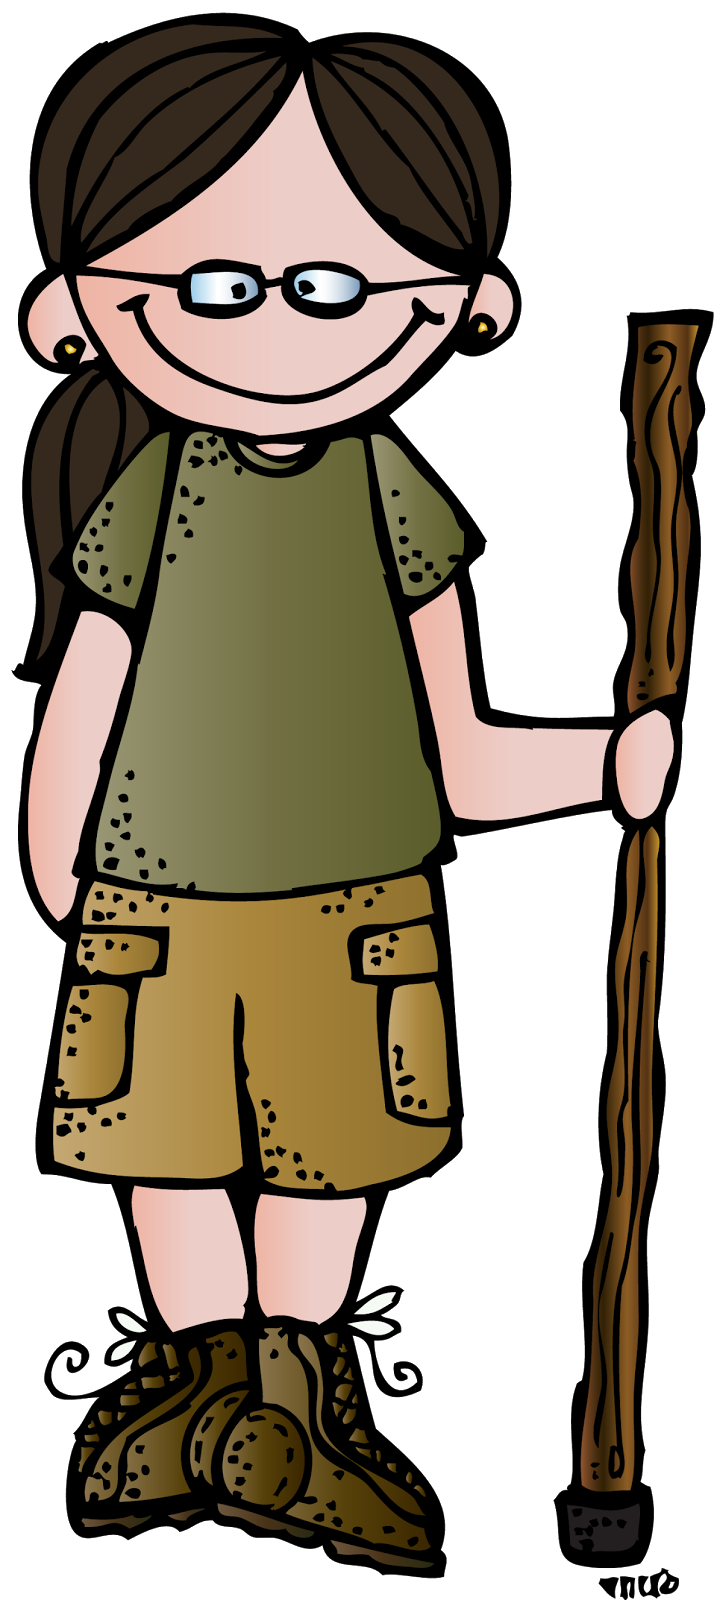 Moses clipart moss. Melonheadz illustrating and doodles